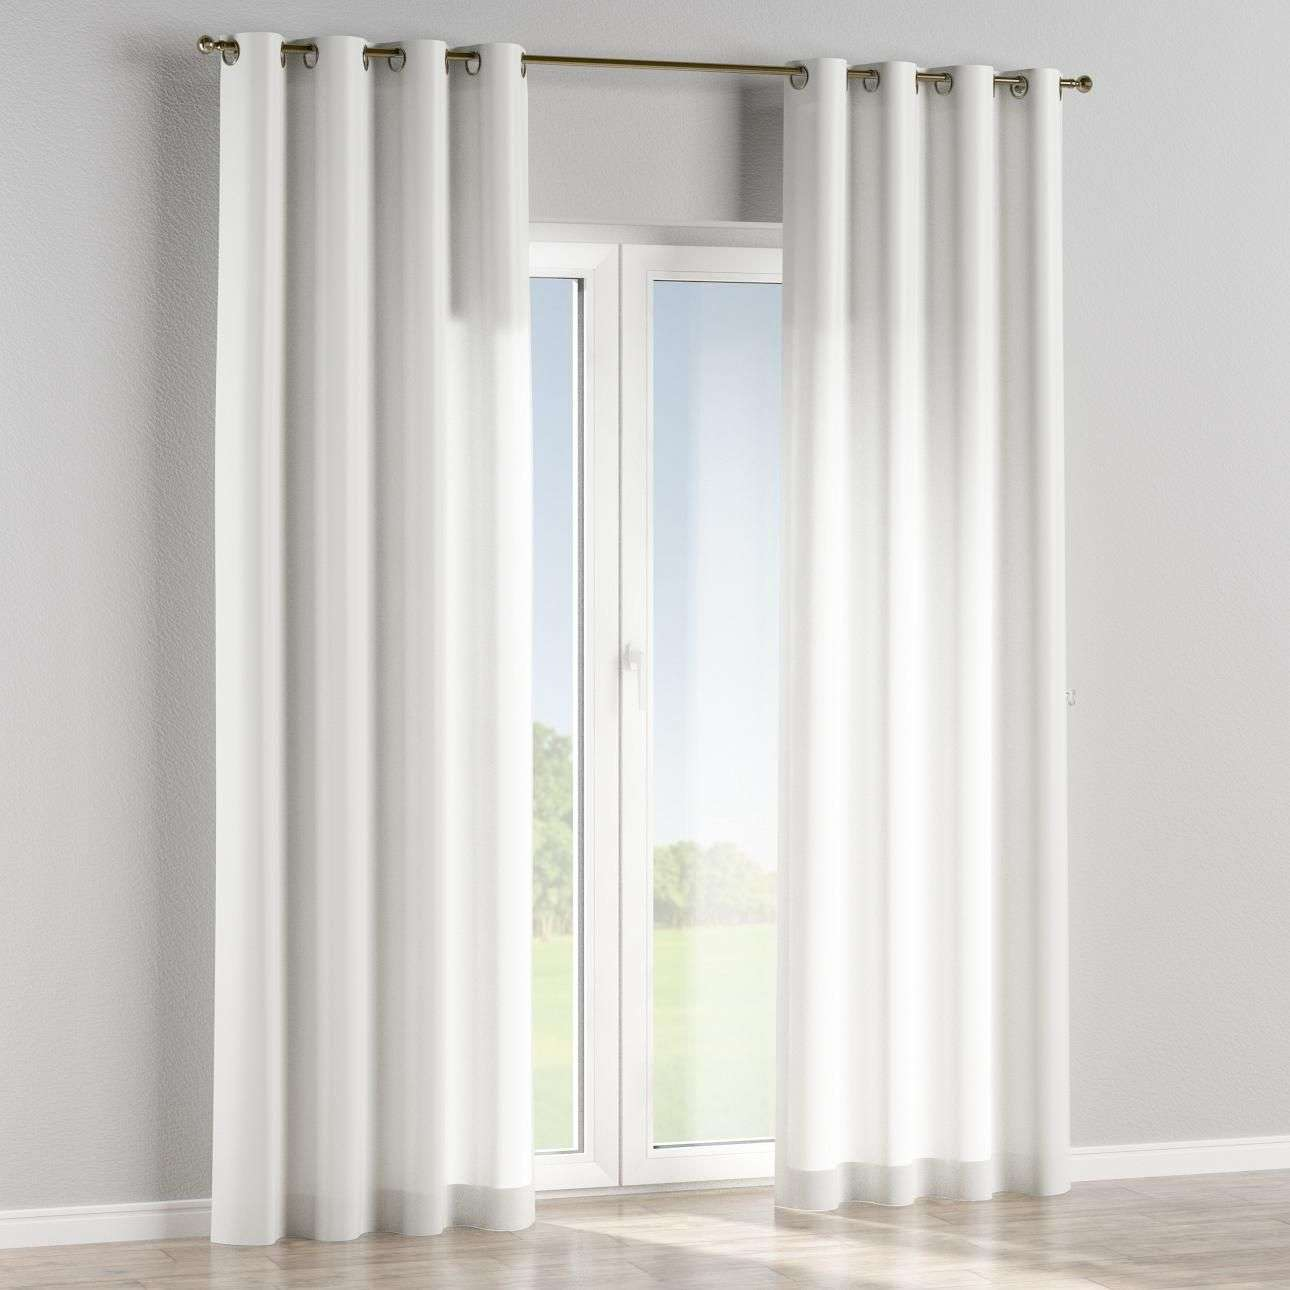 Eyelet lined curtains in collection Londres, fabric: 122-08